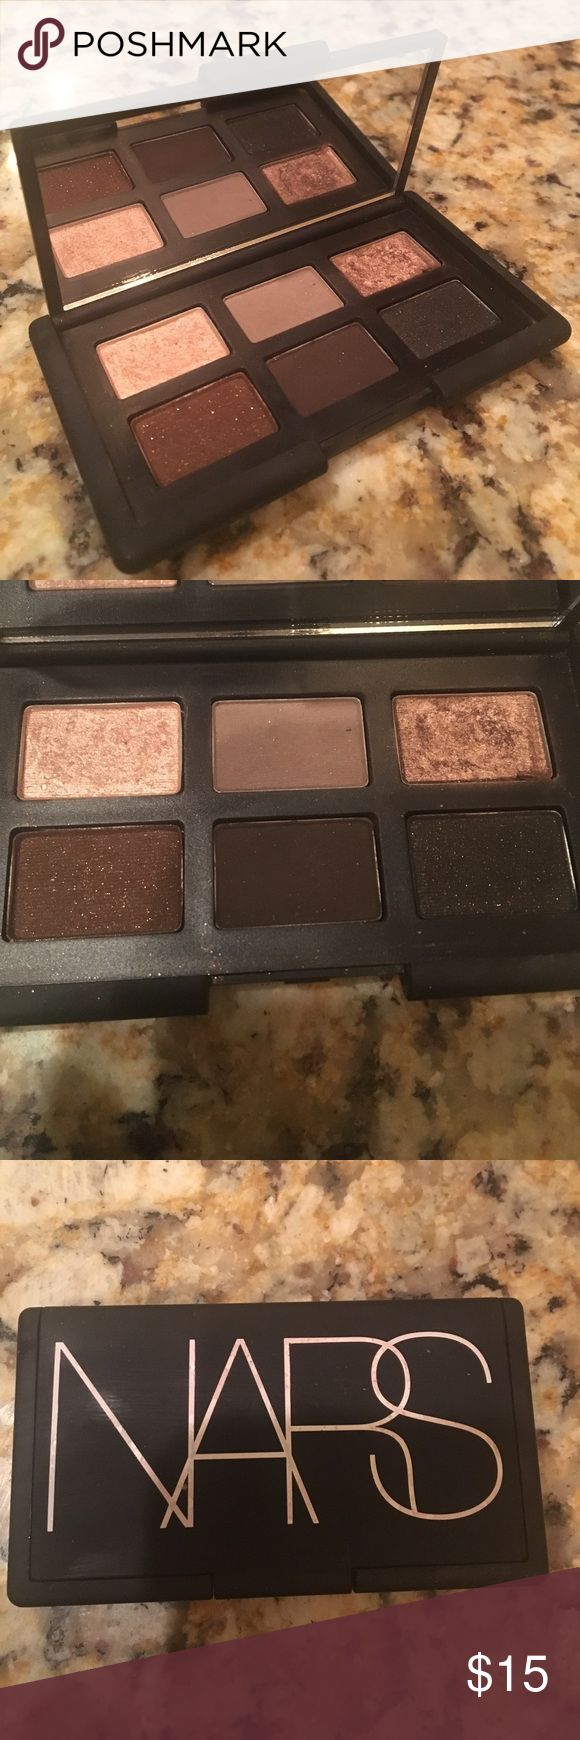 """NARS eyeshadow palette NARS """"And God Created the Woman"""" eye shadow palette. Used about 5 times. Just downsizing on my makeup collection . Authenticity guaranteed! Nice thin, small palette makes it great for traveling! Fourth picture is swatches found online. NARS Makeup Eyeshadow"""